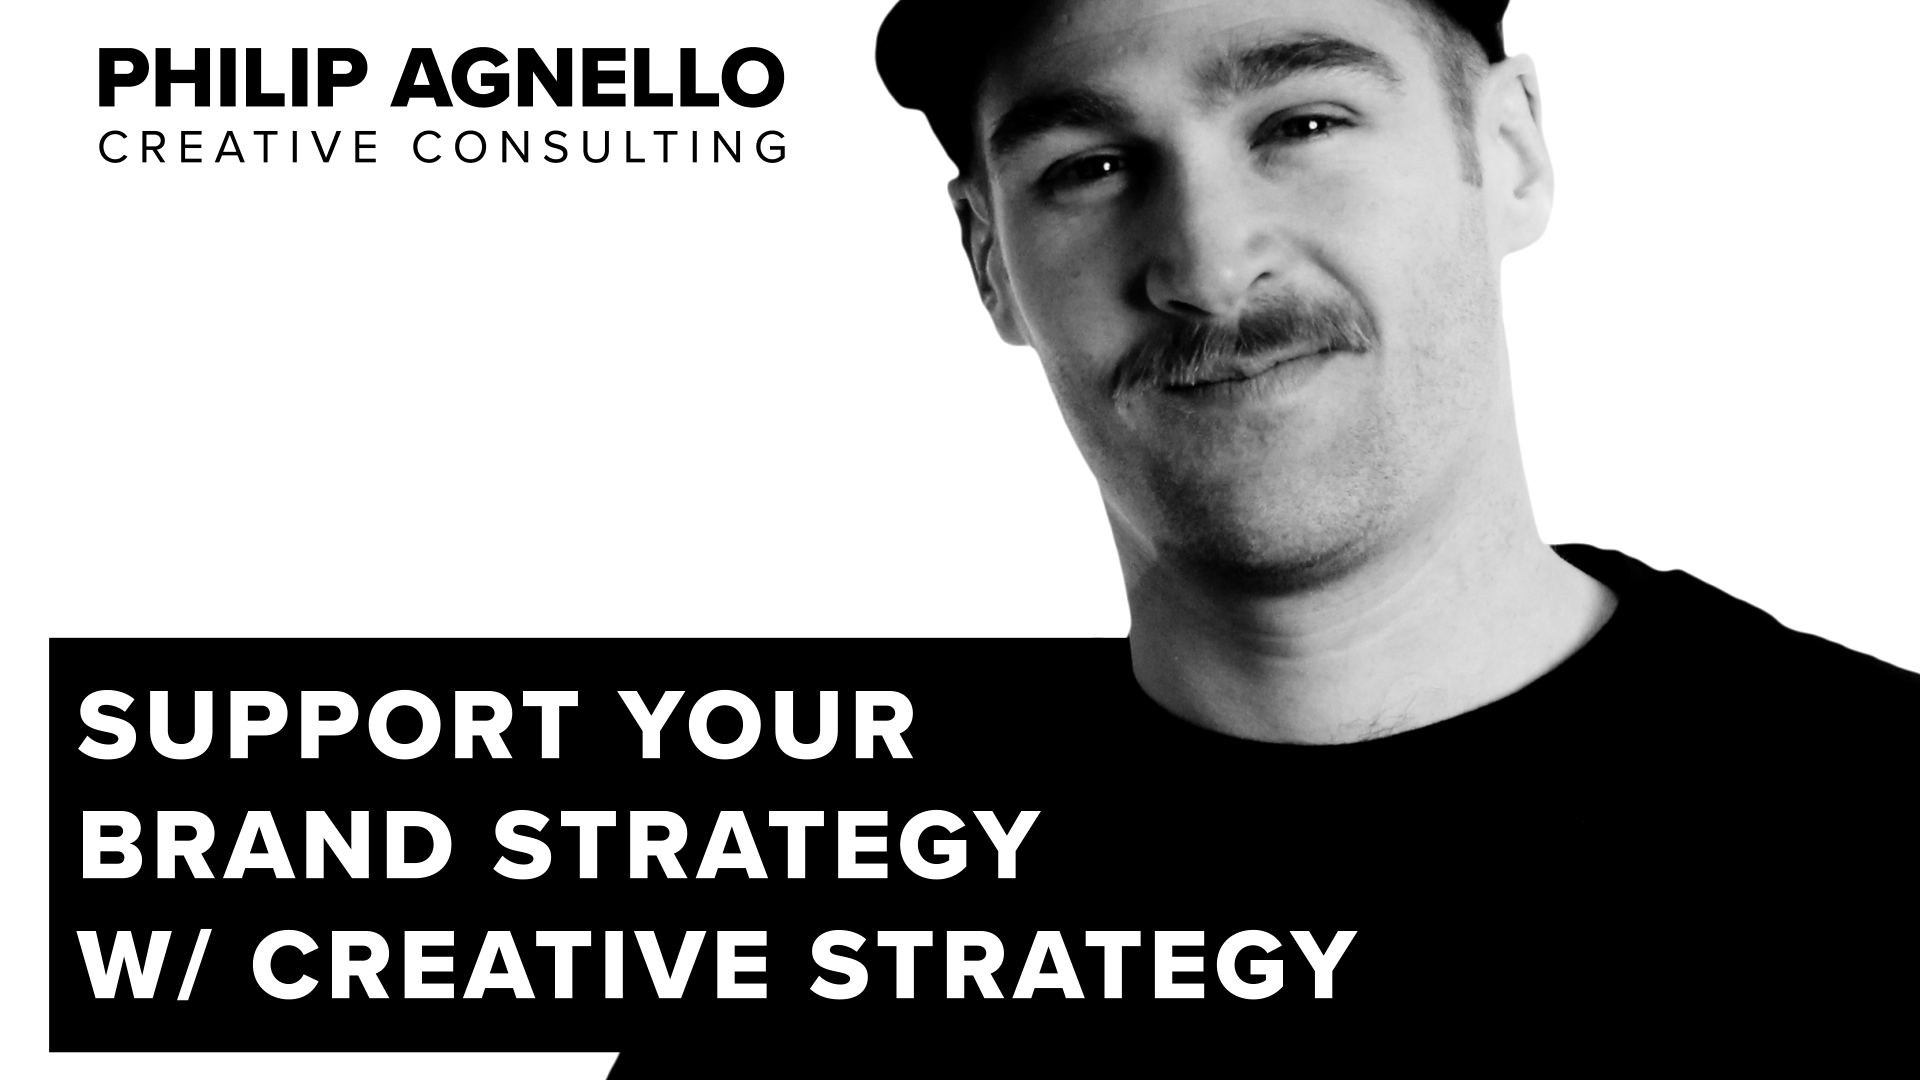 Title: Support Your Brand Strategy With Creative Strategy